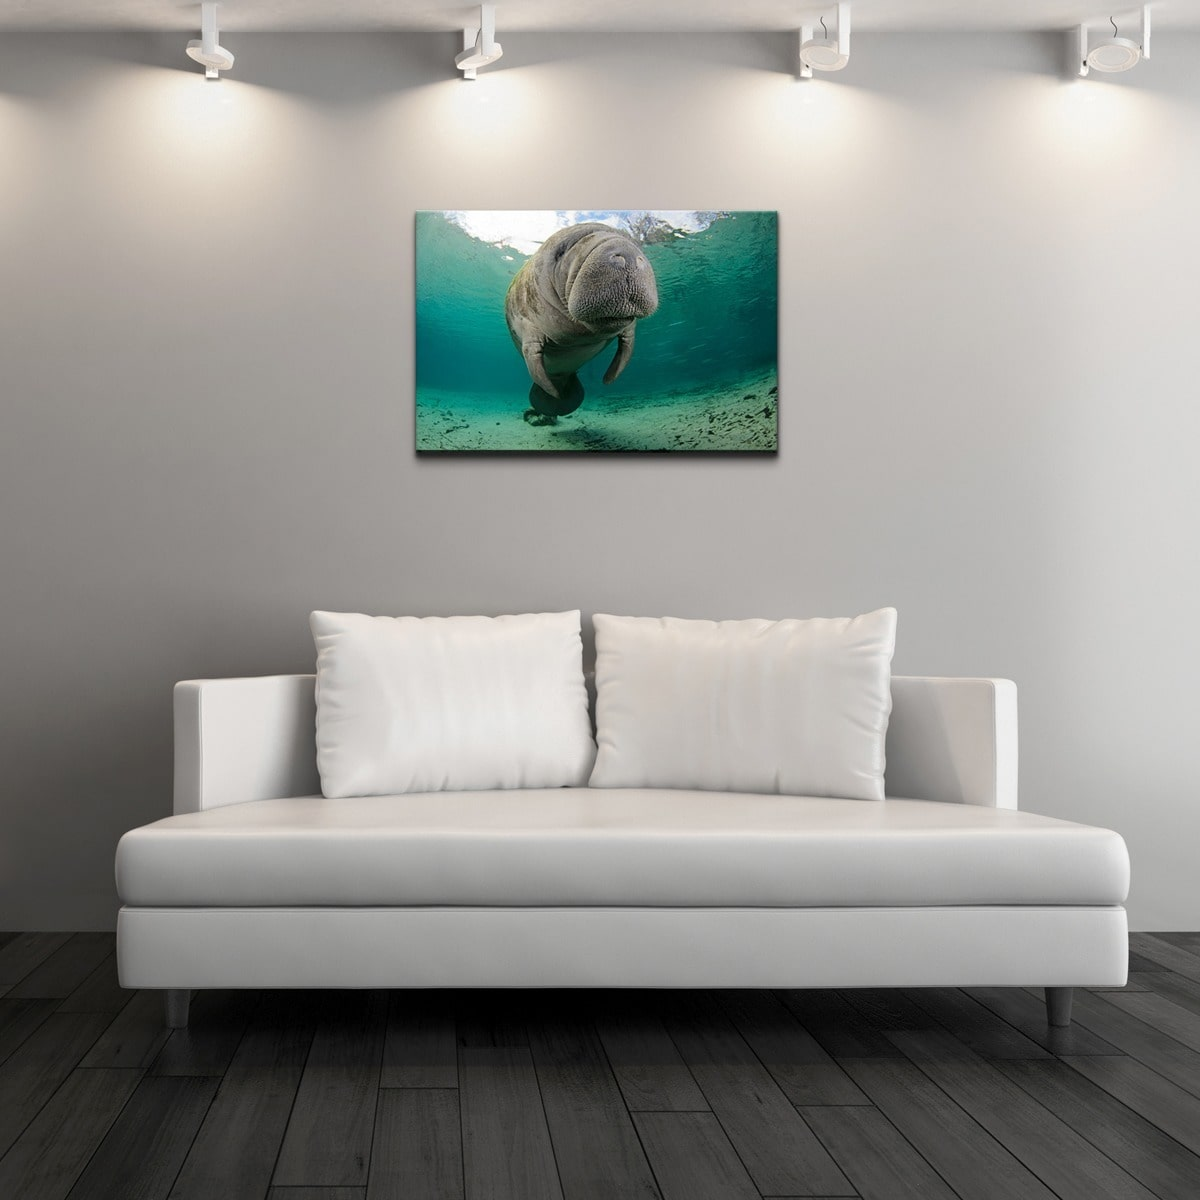 Ready2HangArt Chris Doherty 'Manatee' Canvas Wall Art